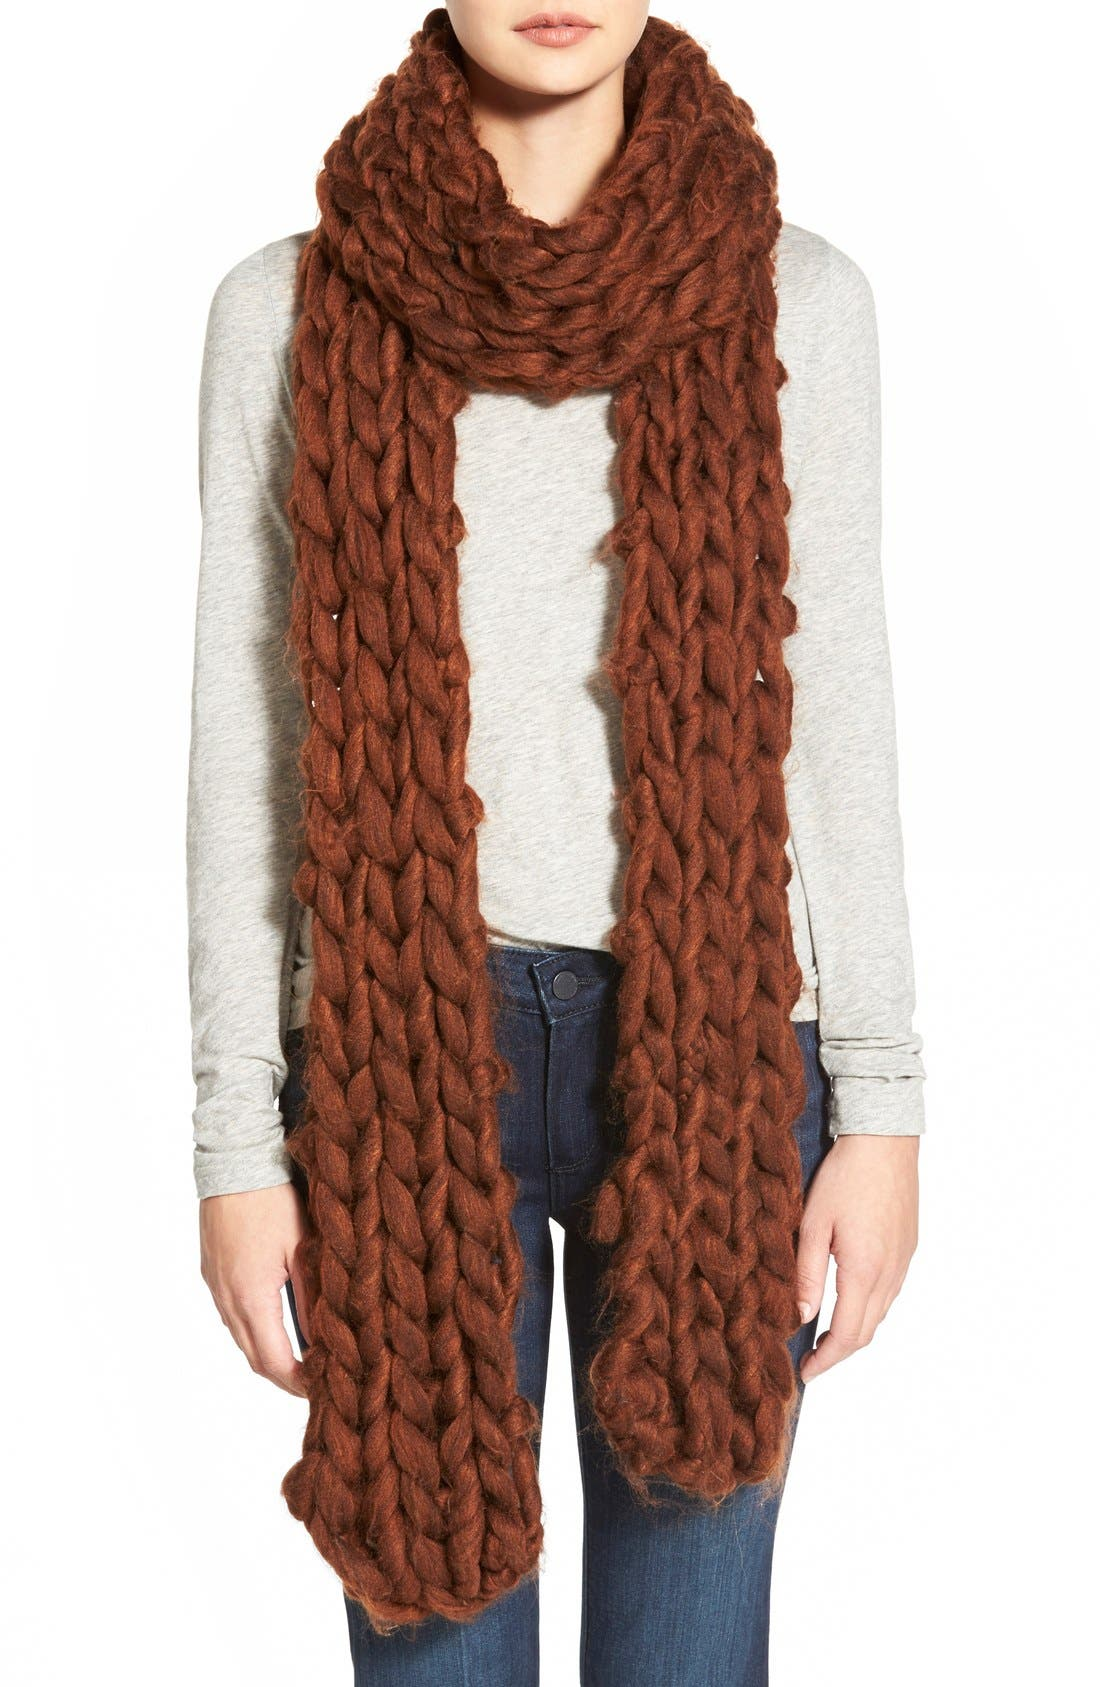 FREE PEOPLE,                             Chunky Knit Scarf,                             Main thumbnail 1, color,                             200